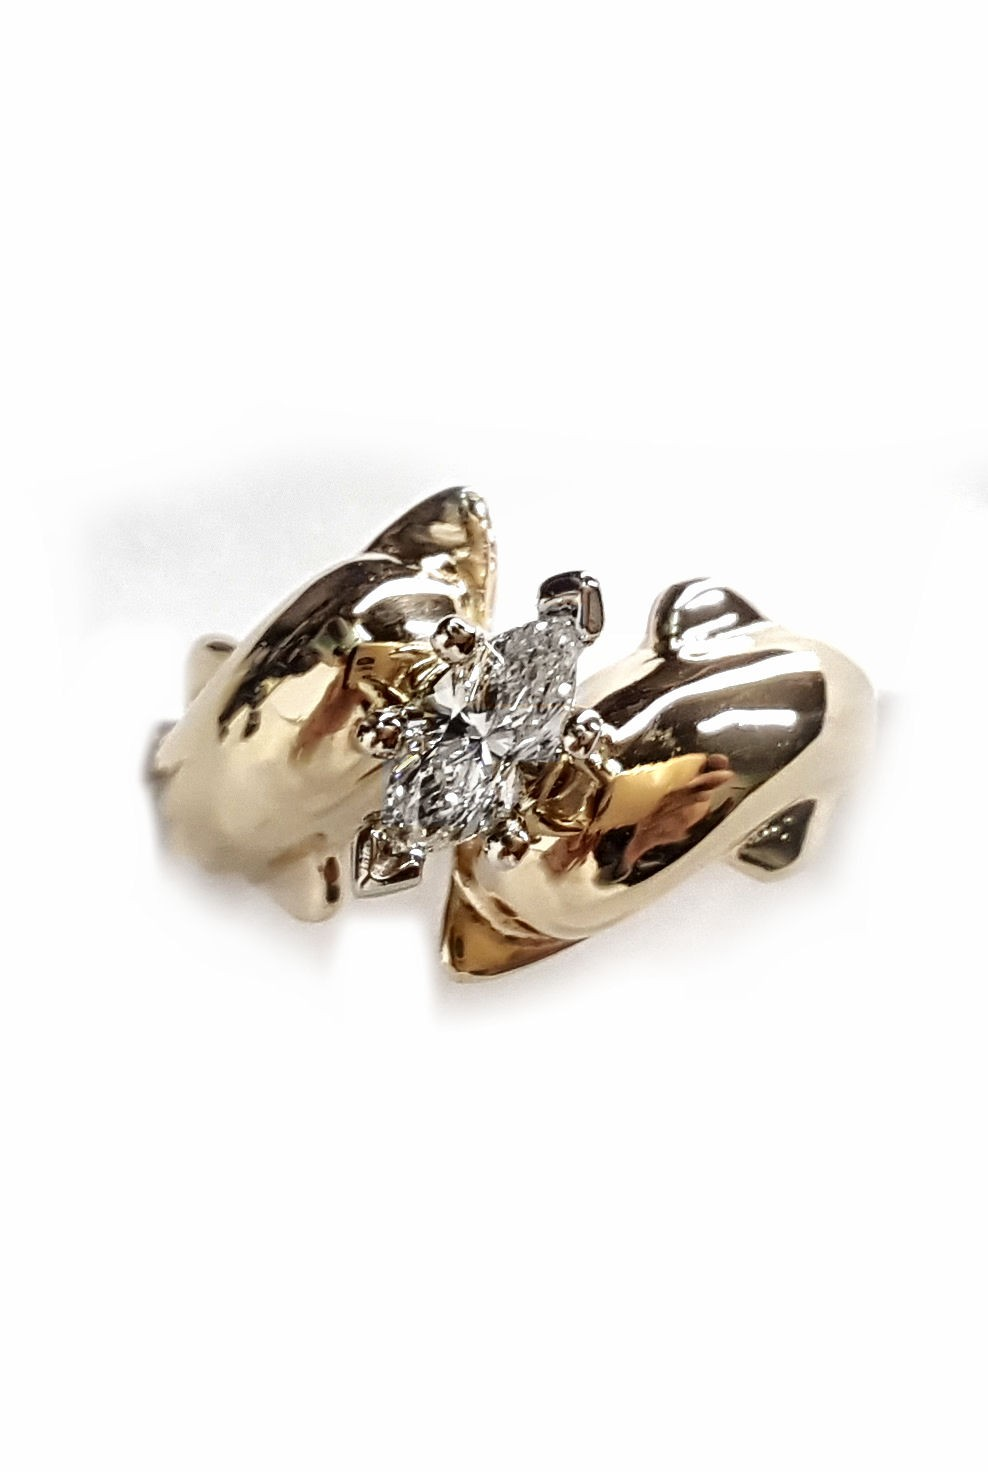 The Dolphin Bridal Jewelry Store Double Dolphin Engagement